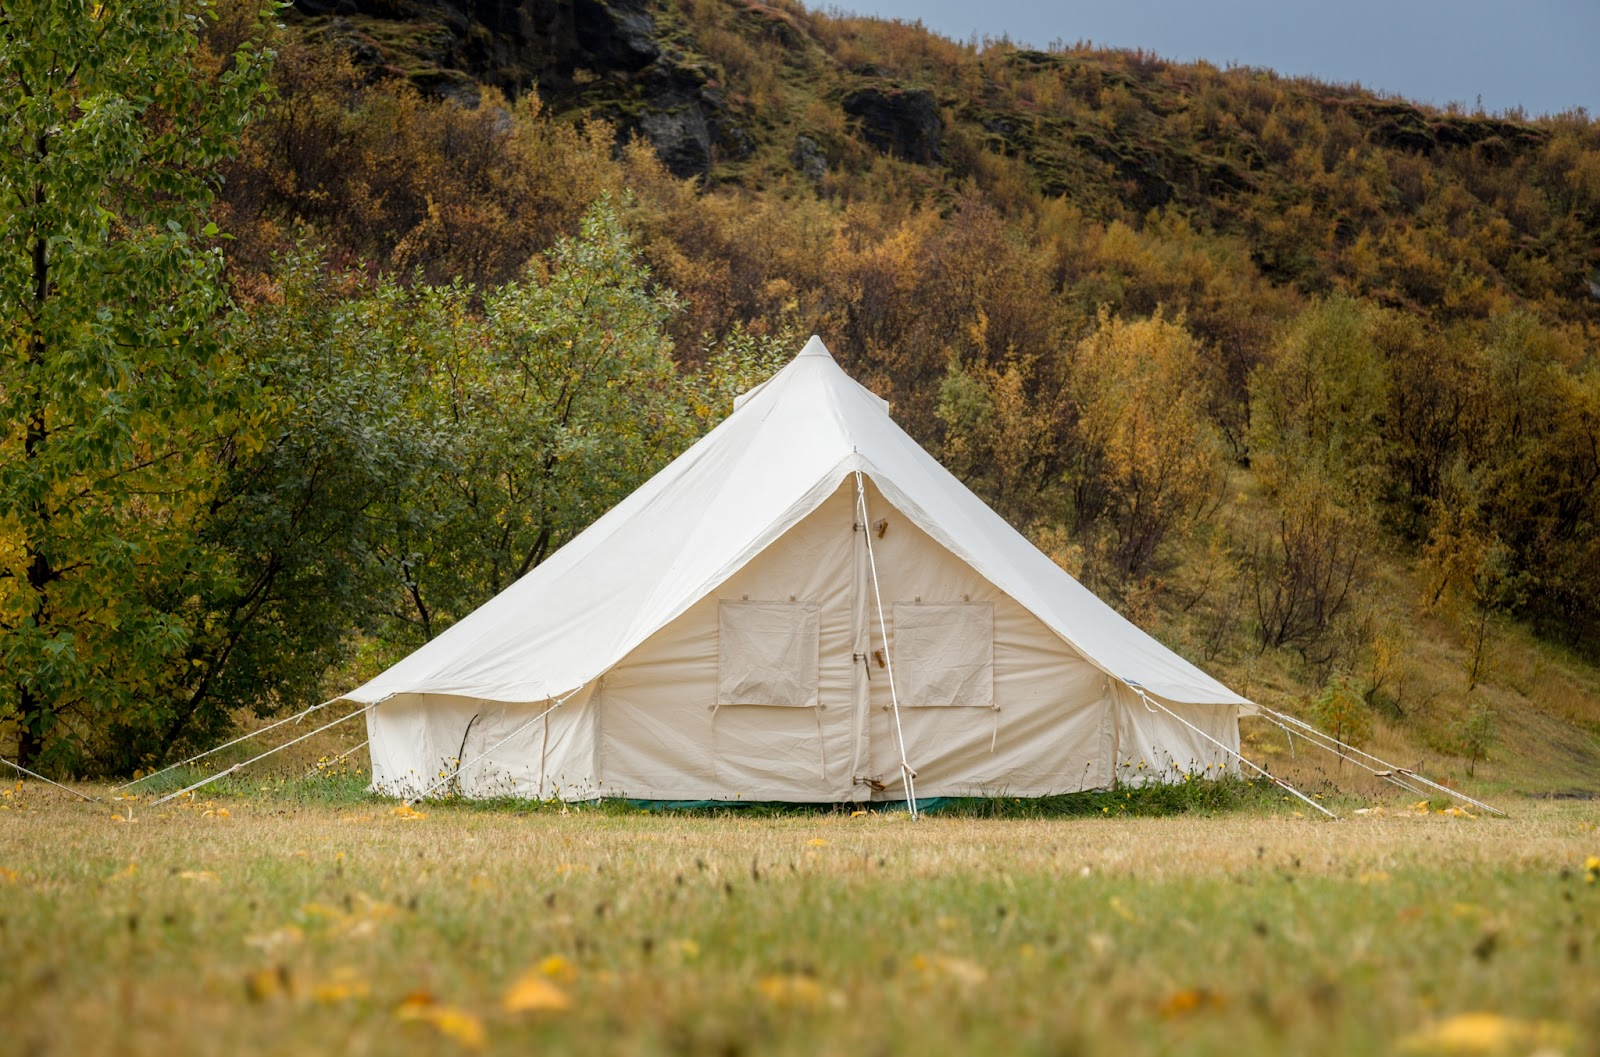 Glamping tent surrounded by autumn colors